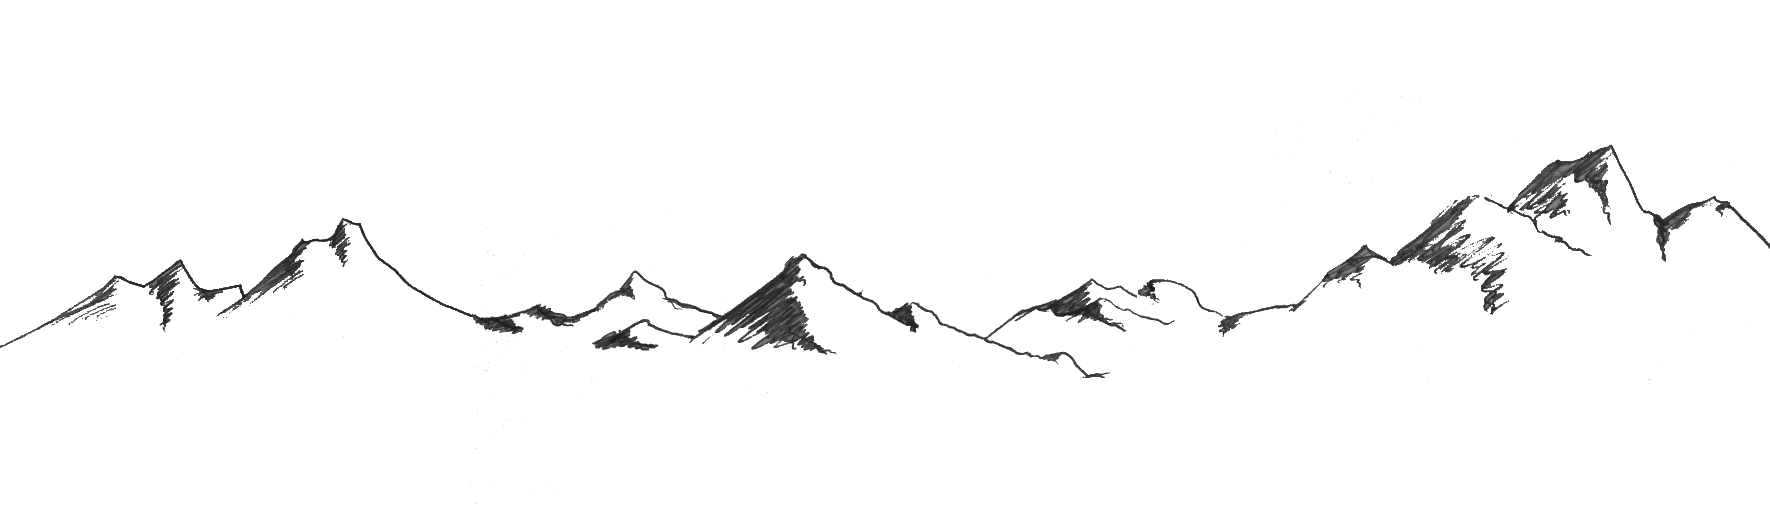 Clipart mountain moutain. Transparent background pencil and